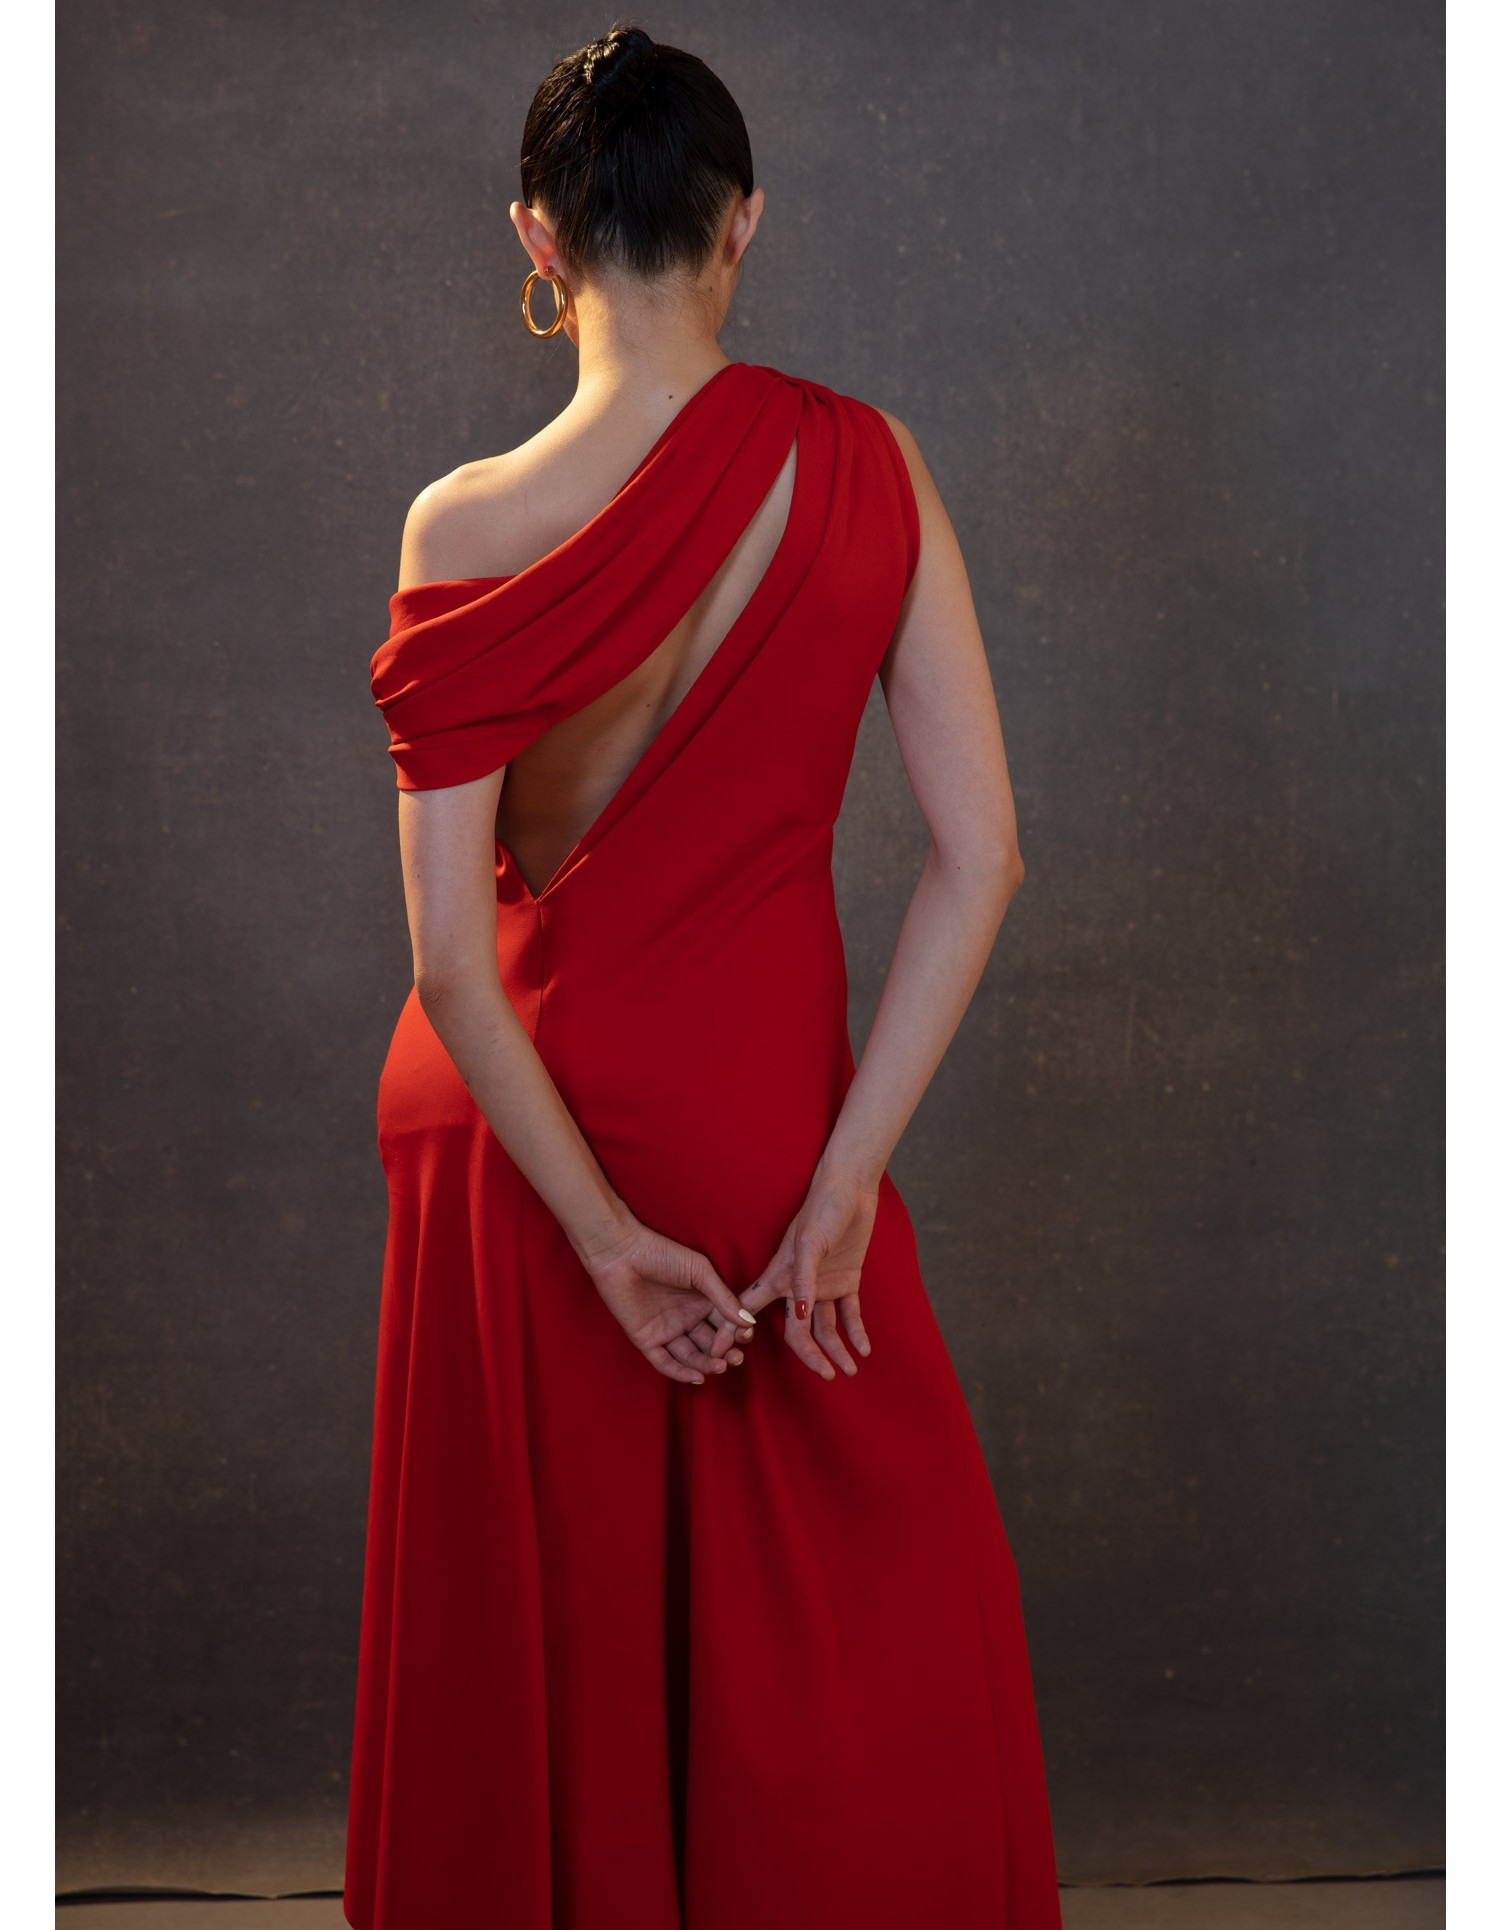 MONSE Knotted Shoulder Drape Dress in Sienna on Model Detail View